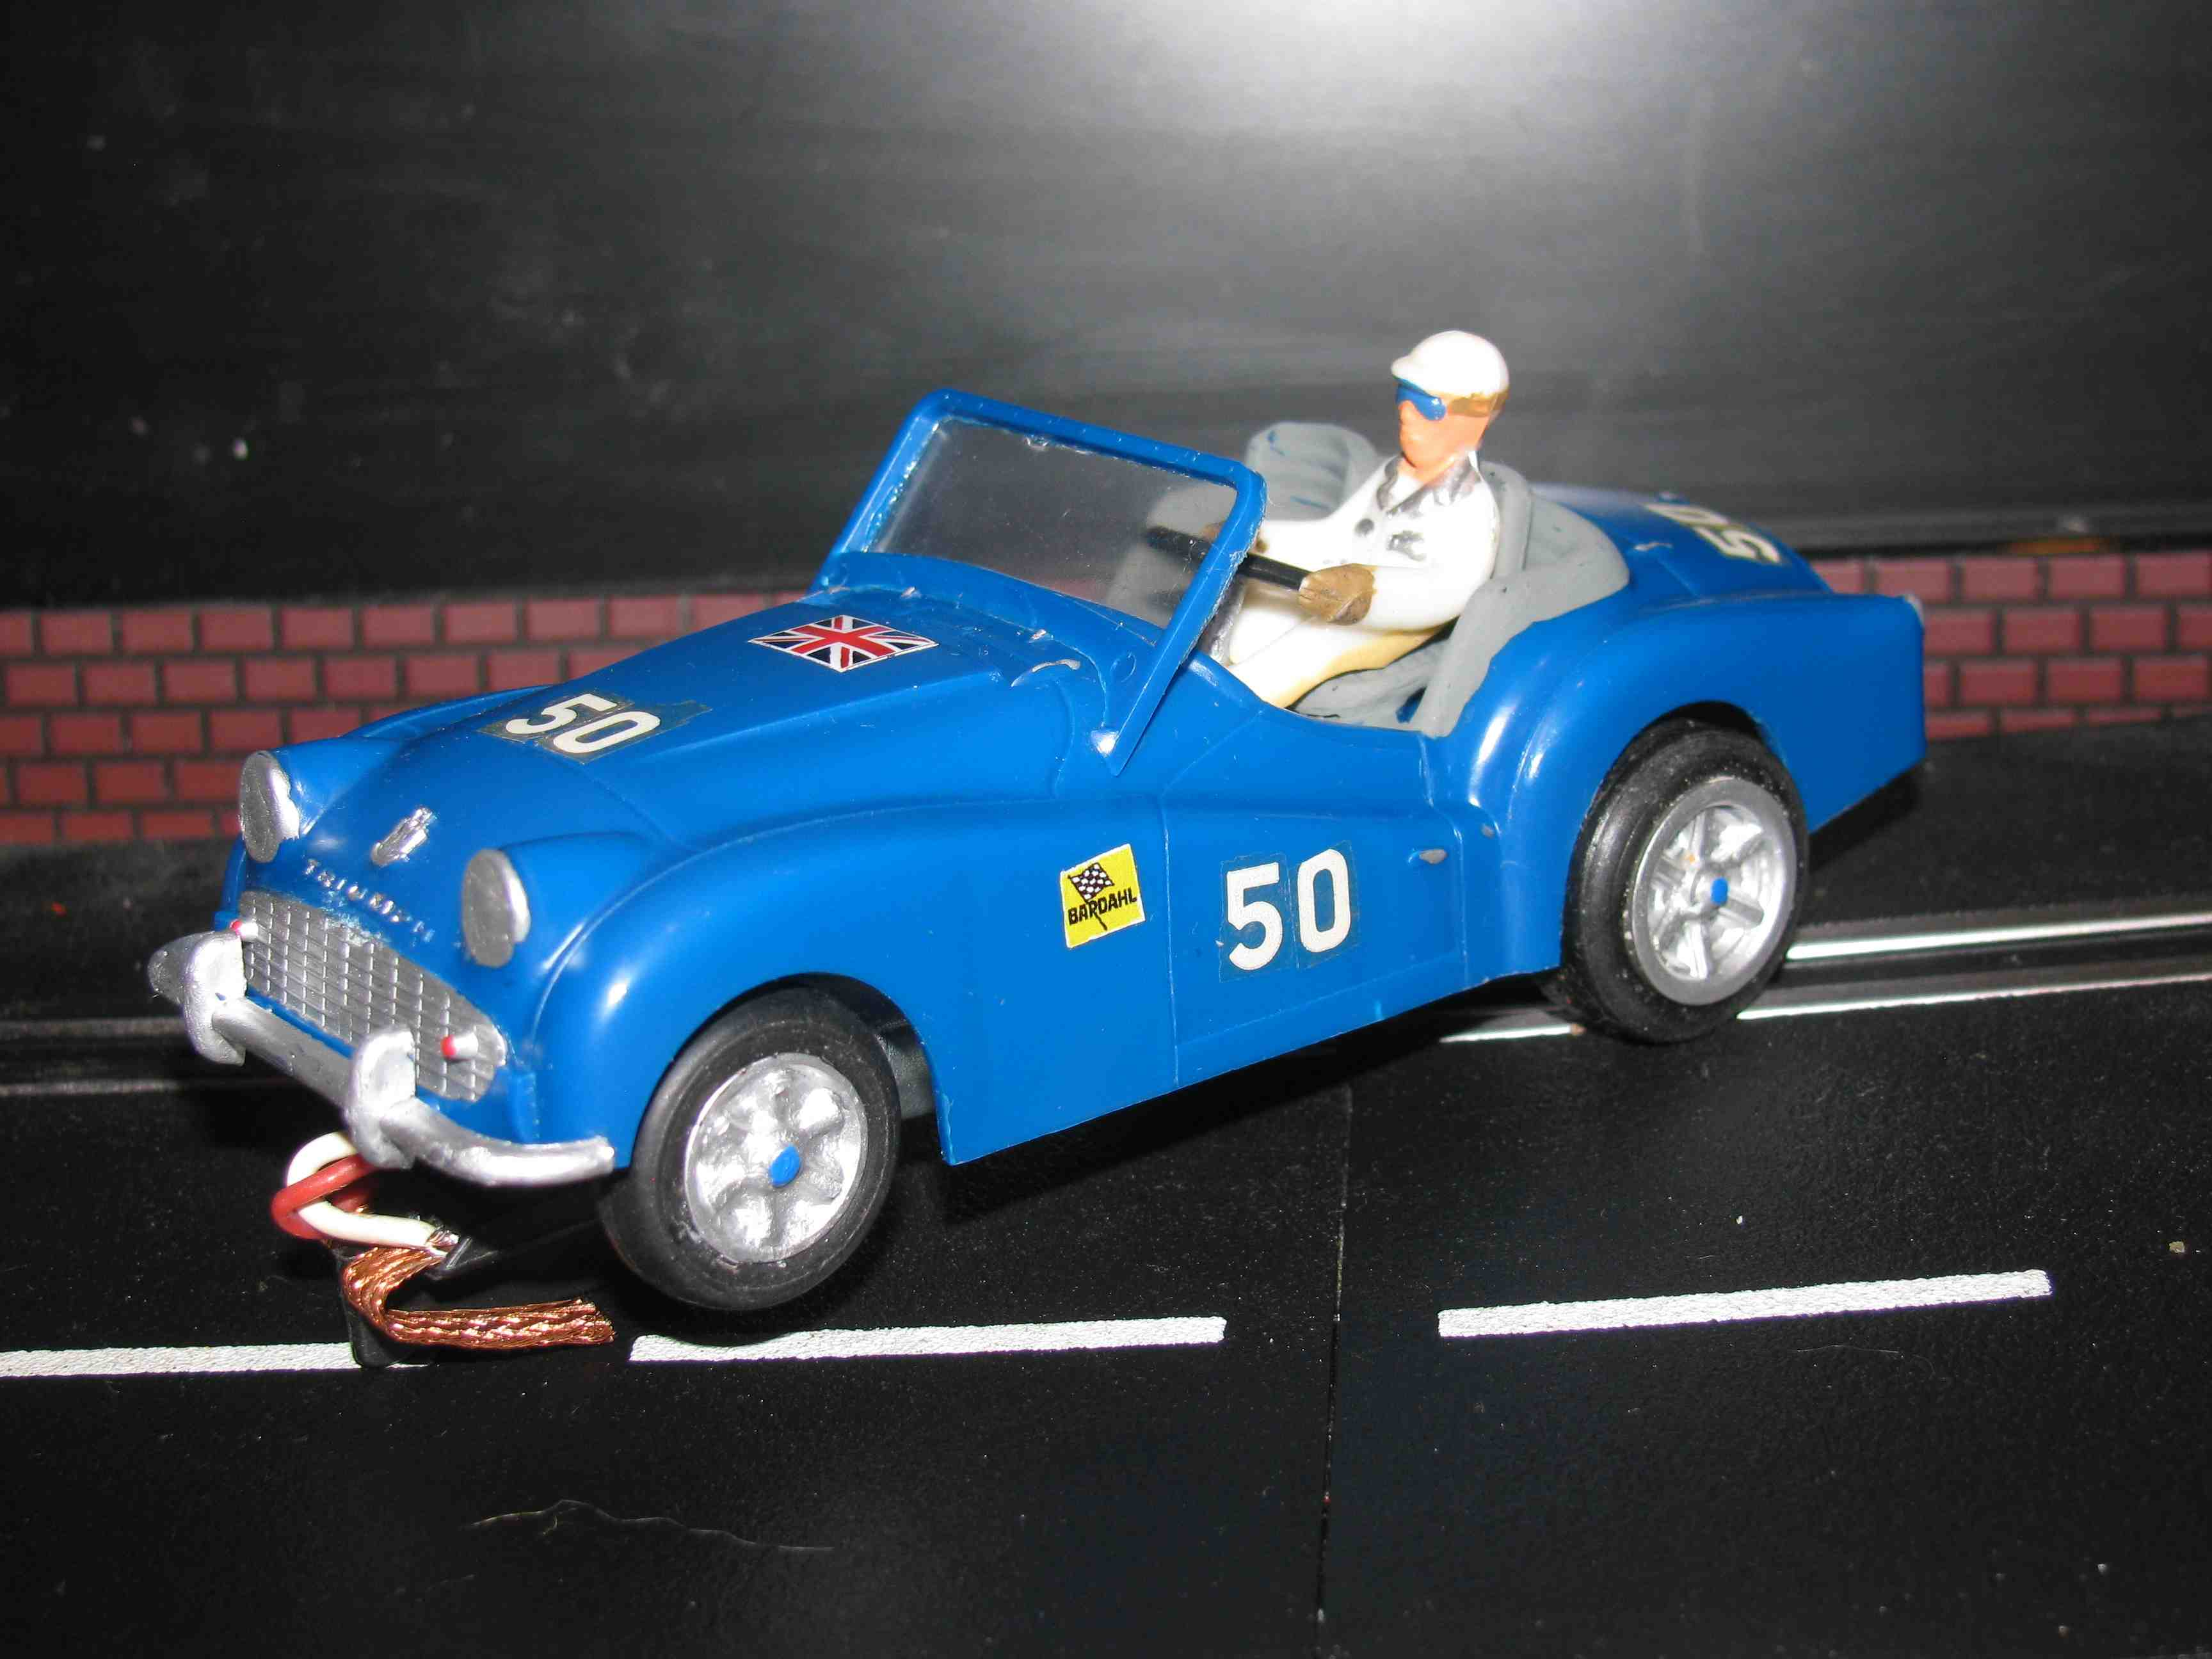 * SOLD * Vintage Triumph TR3 Racer Slot Car 1/32 Scale